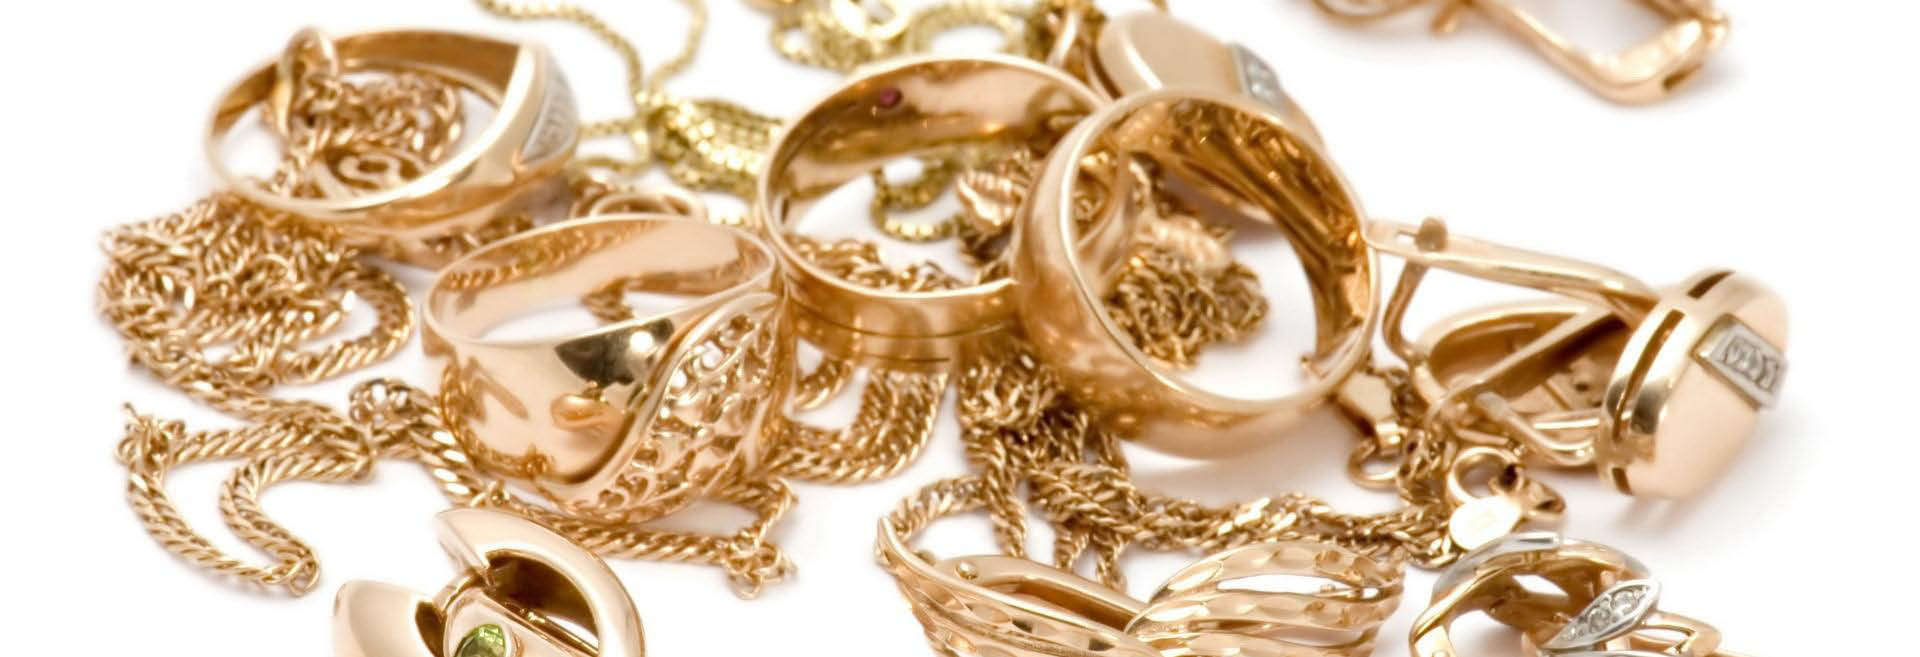 Derzon Coins and Jewelry - We Buy and Sell Jewelry- Milwaukee